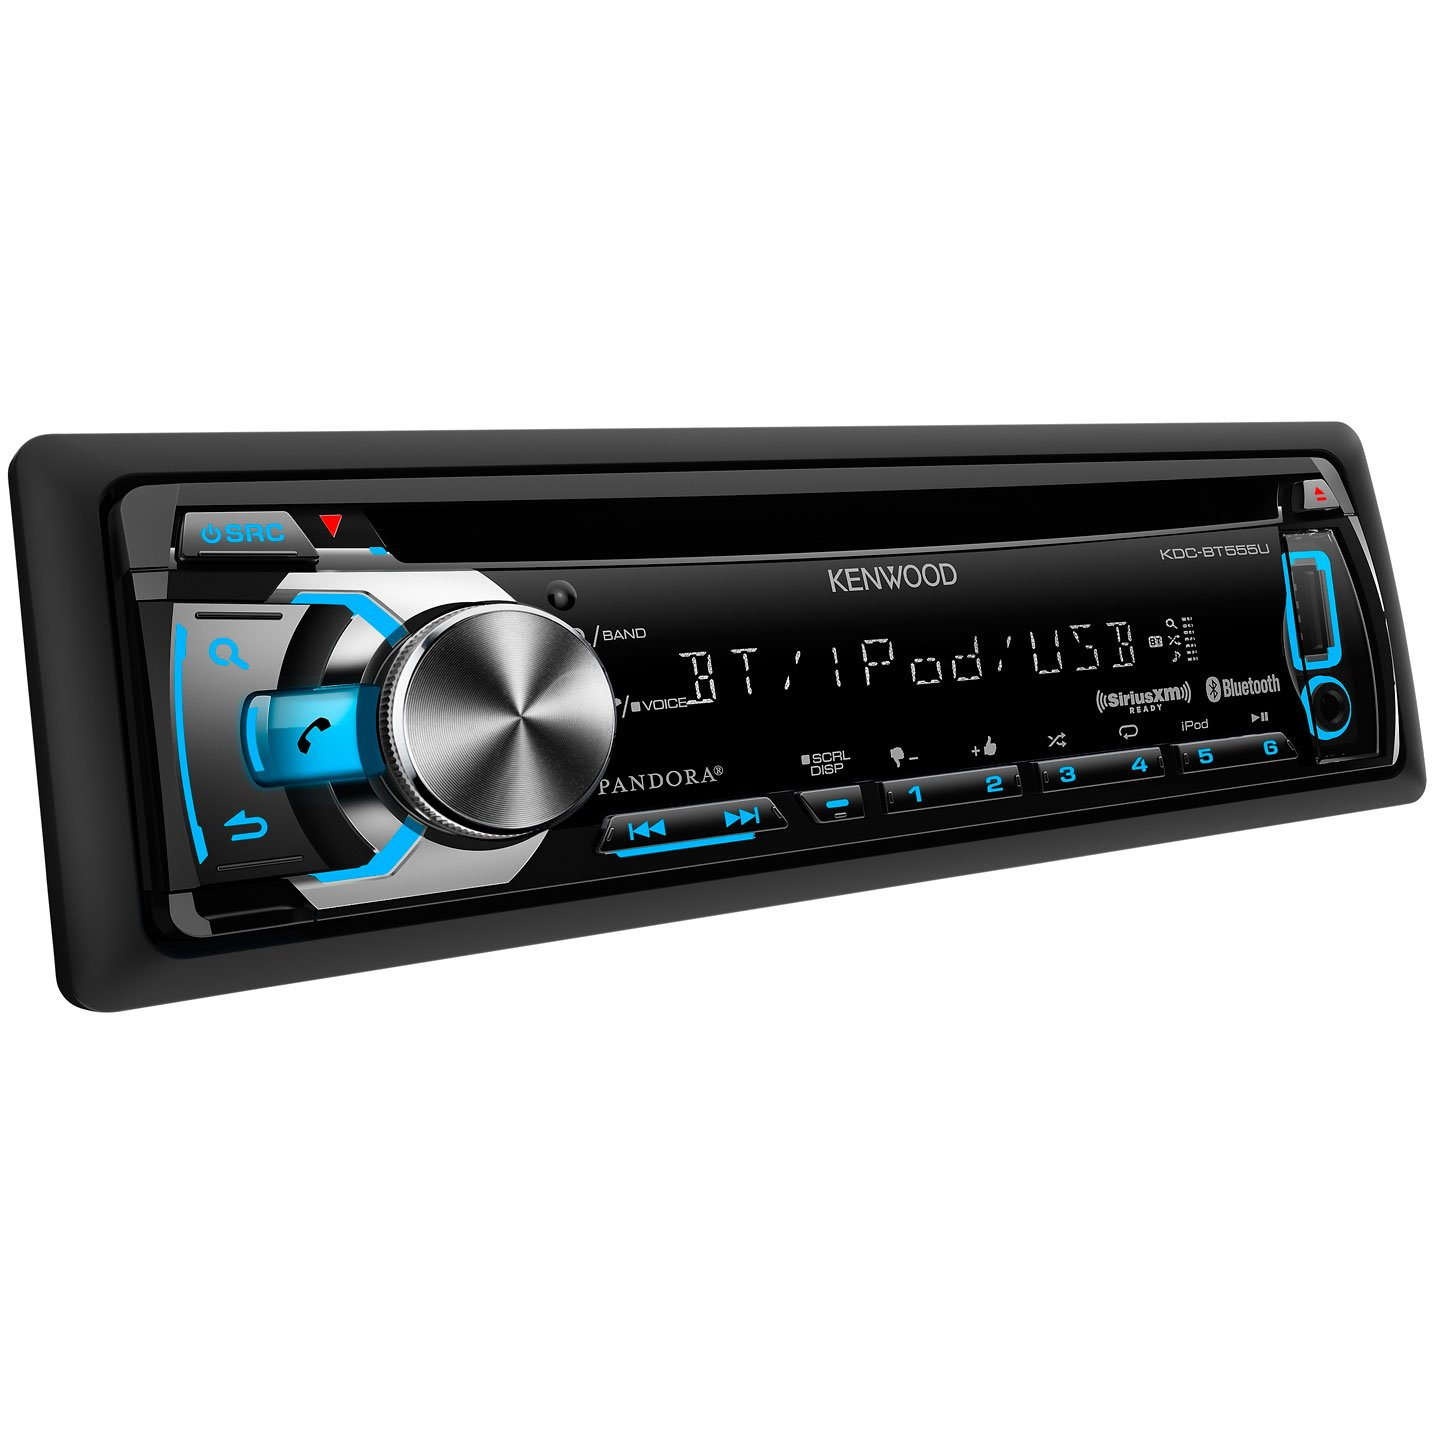 Amazon.com: Kenwood KDC-BT555U In-Dash CD/MP3/USB Car Stereo Receiver with  Bluetooth: Cell Phones & Accessories